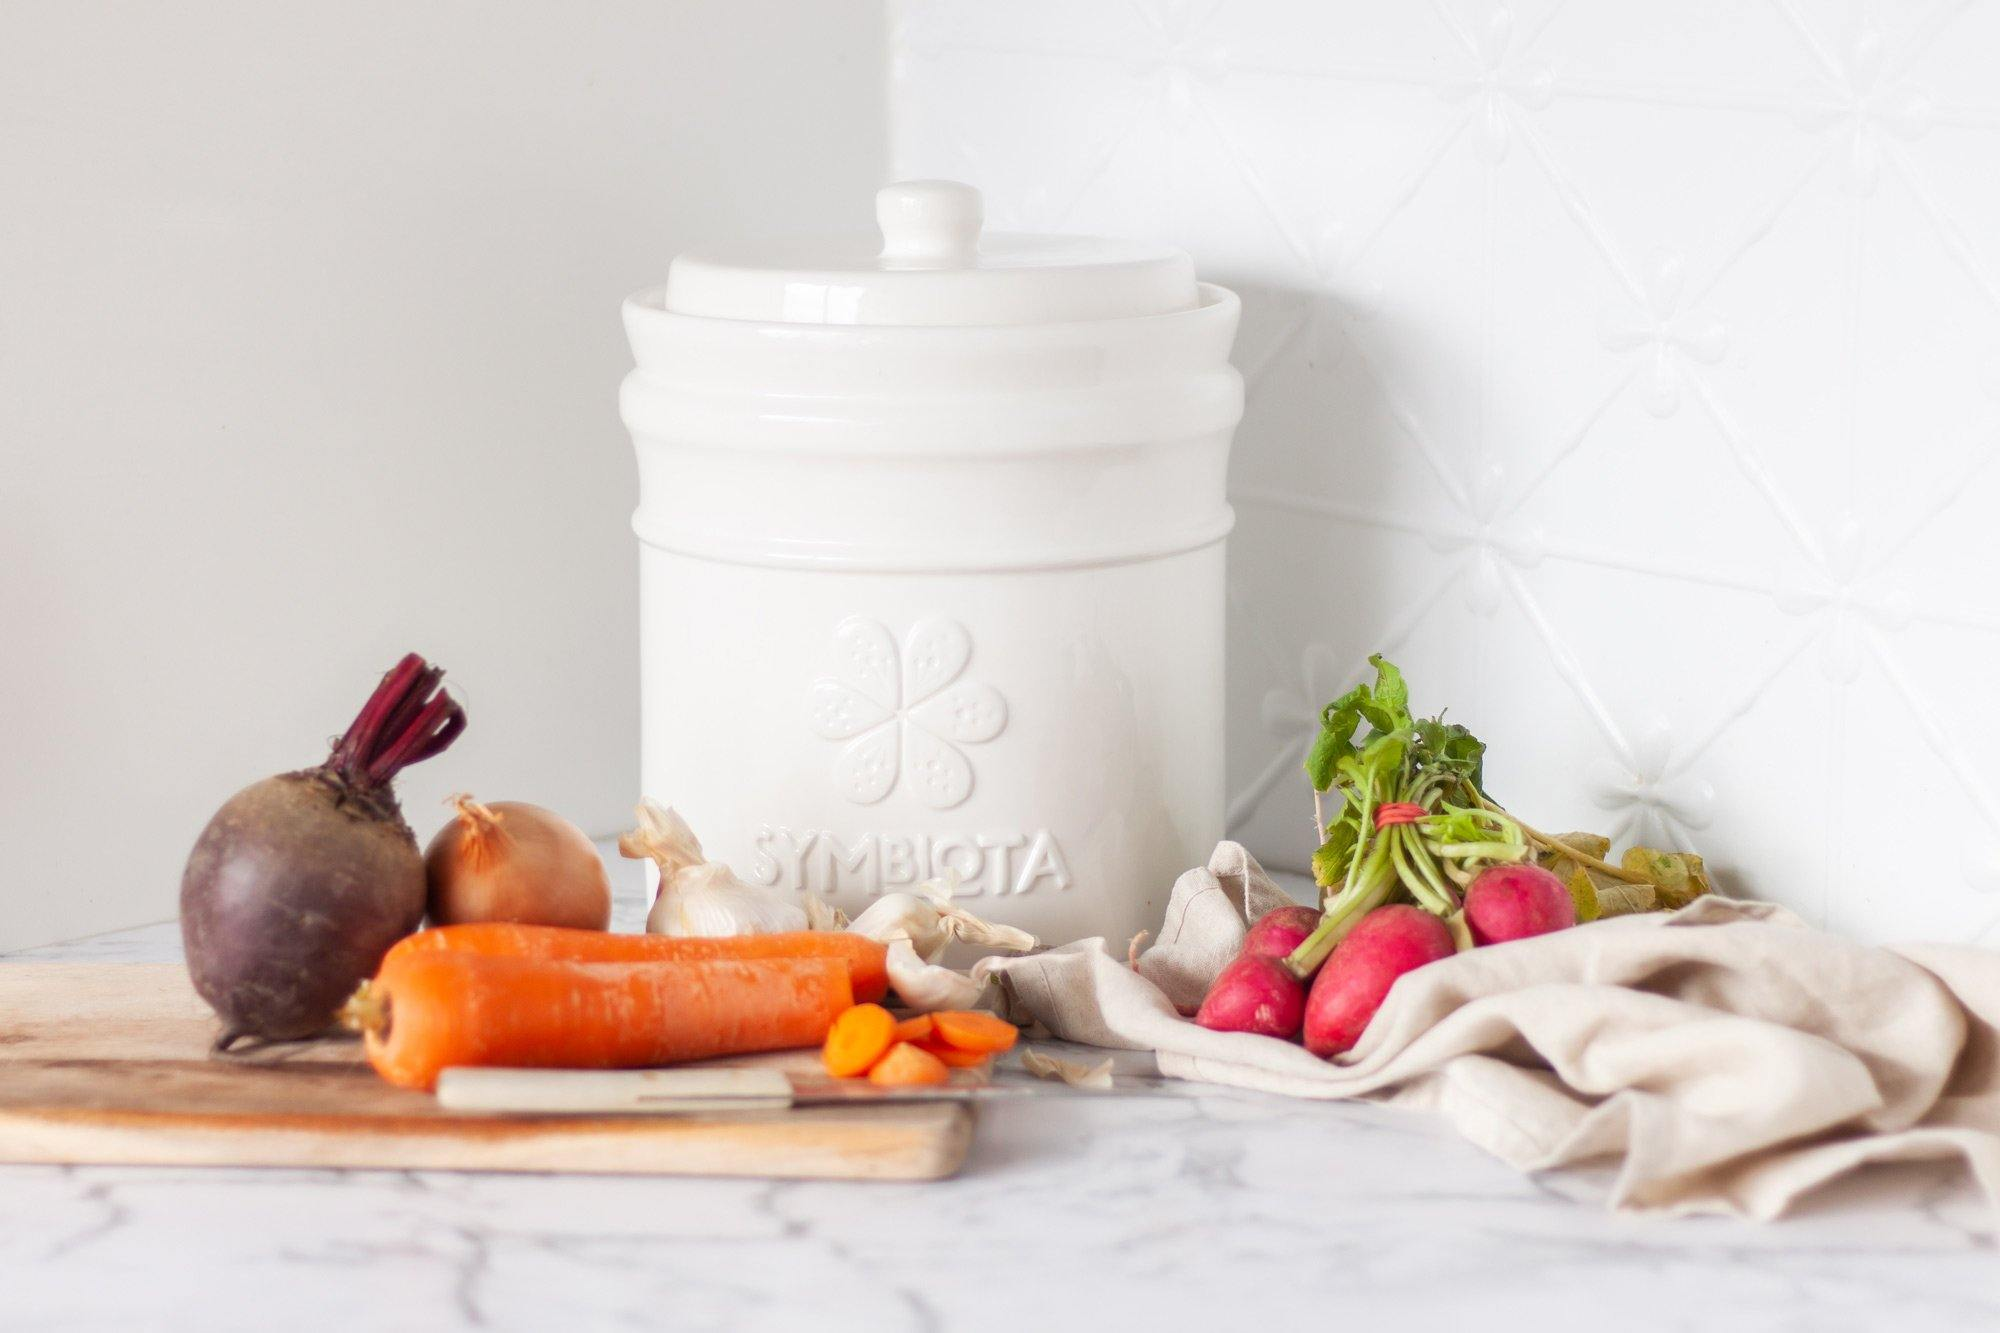 4.5L Fermentation pot by Symbiota. Make your own Fermentation food.